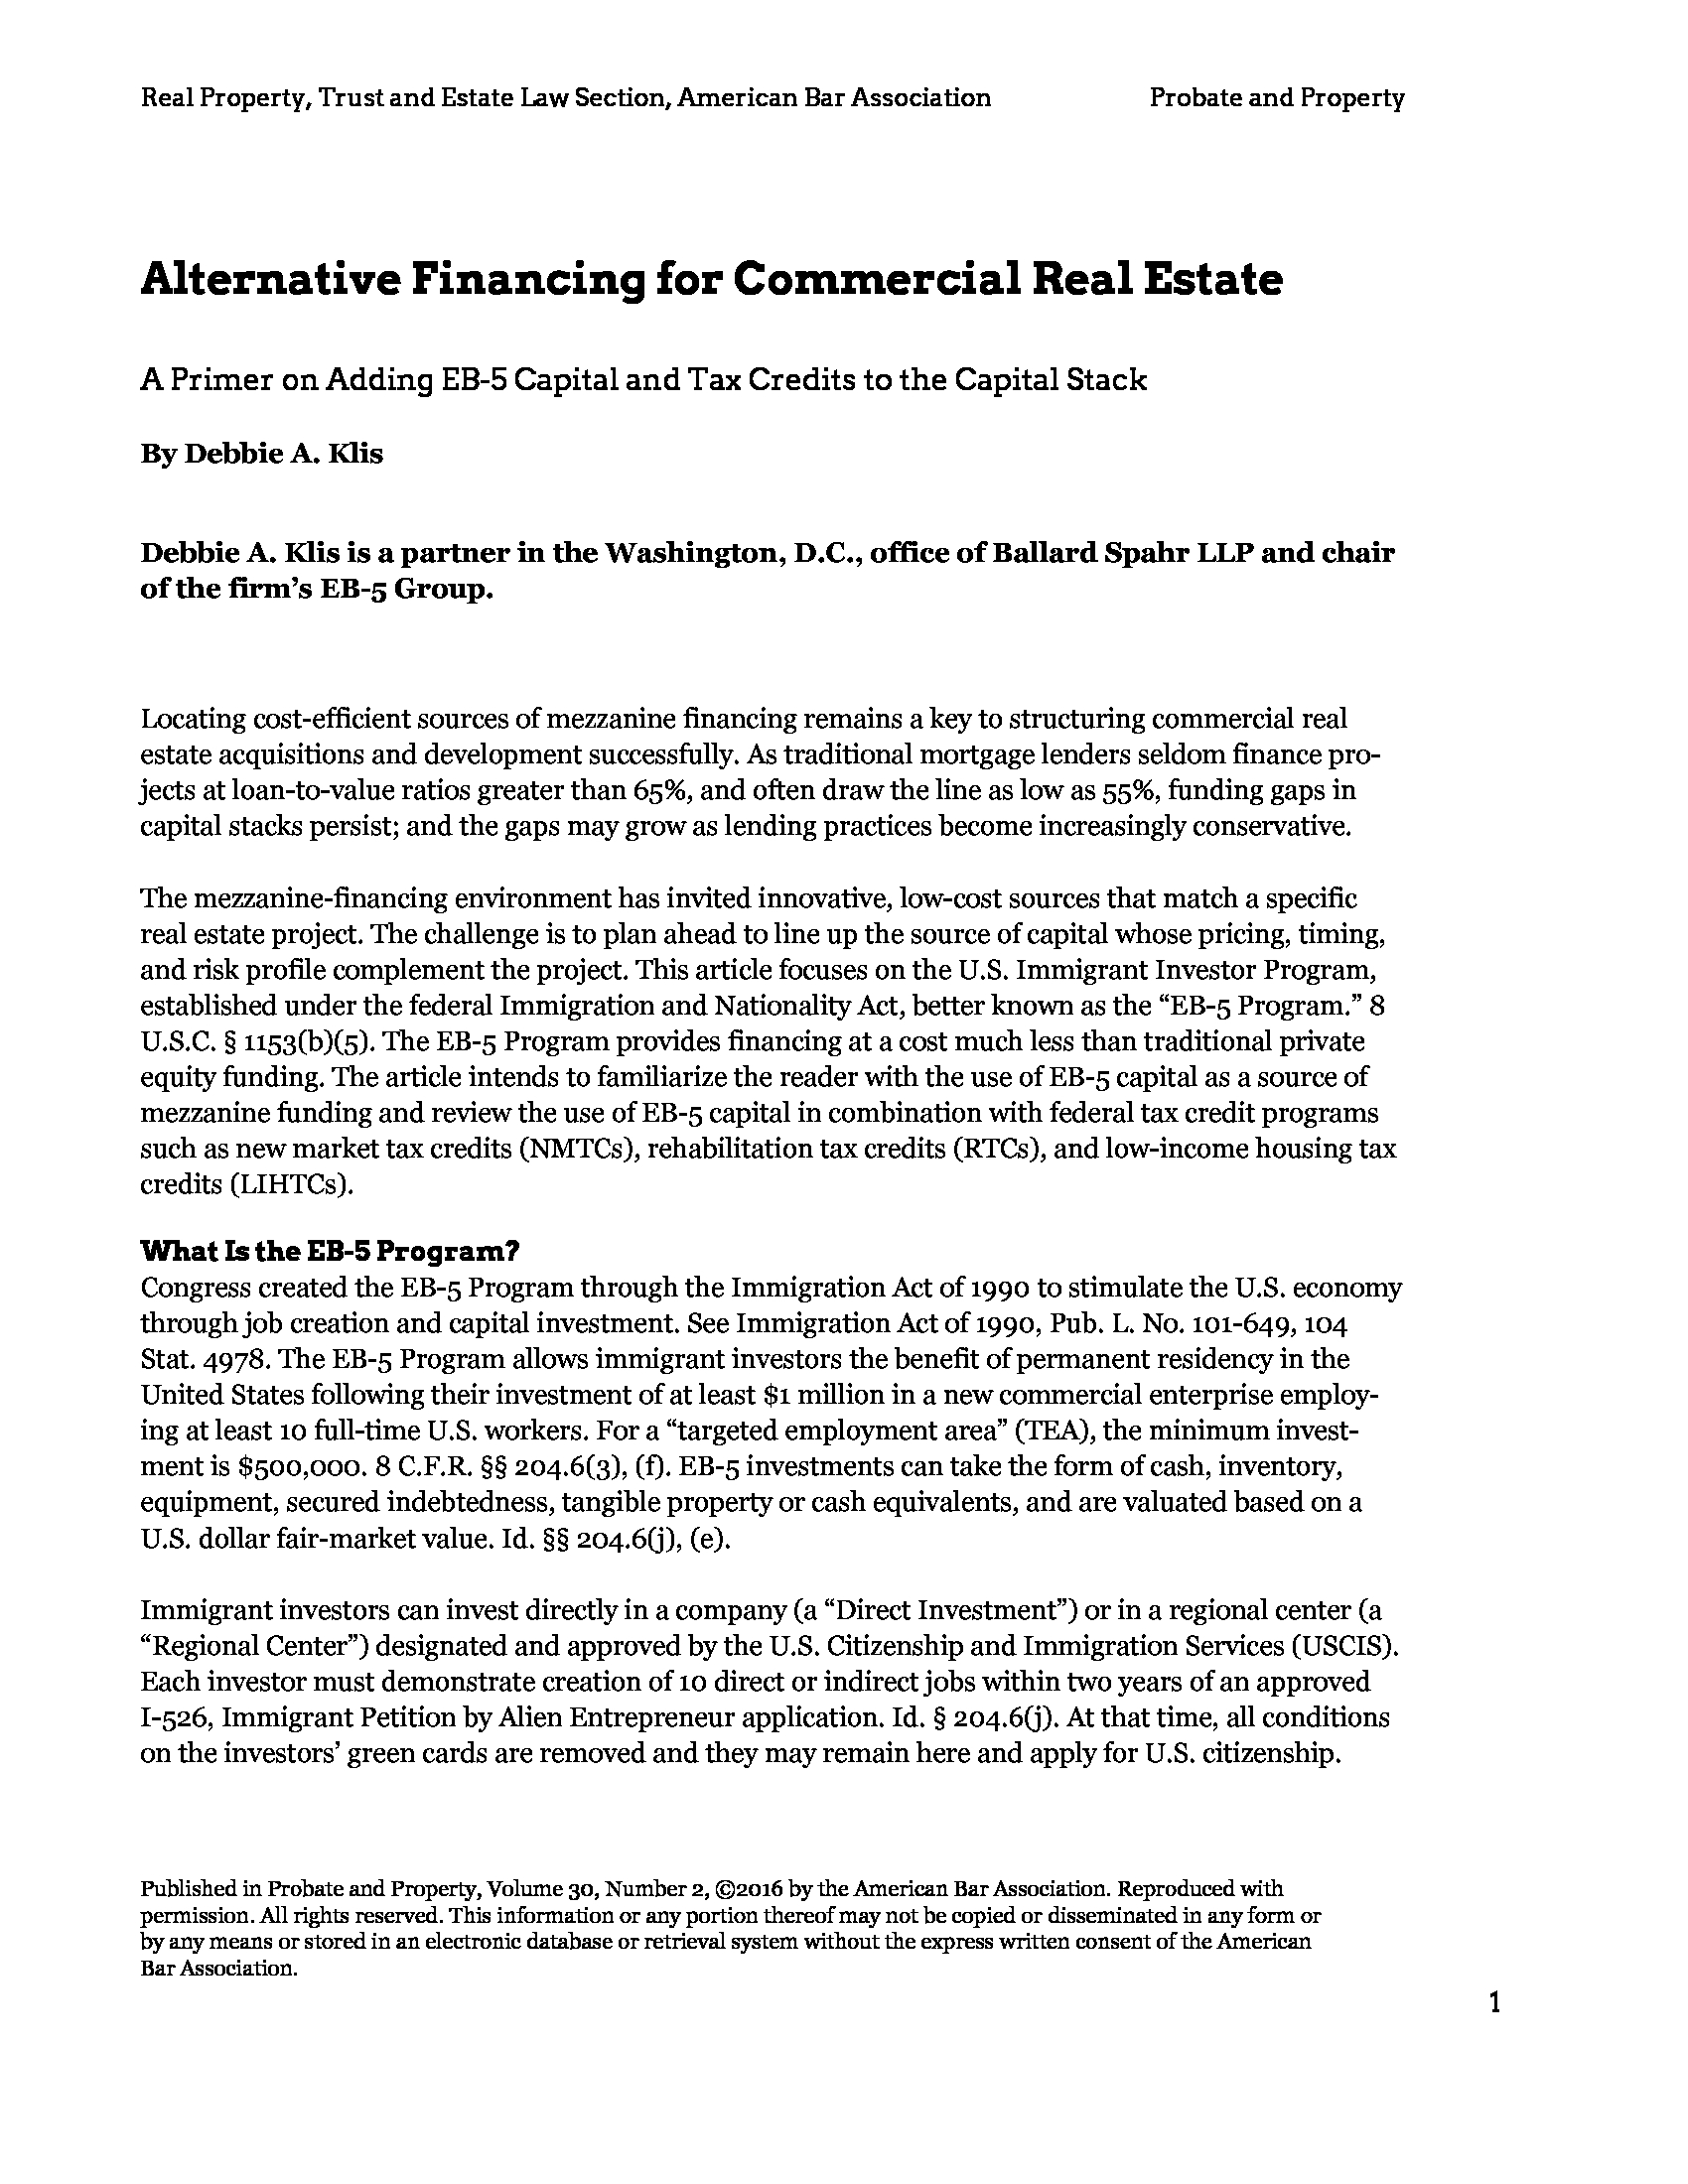 Advisorselect - Alternative Financing for Commercial Real Estate – A